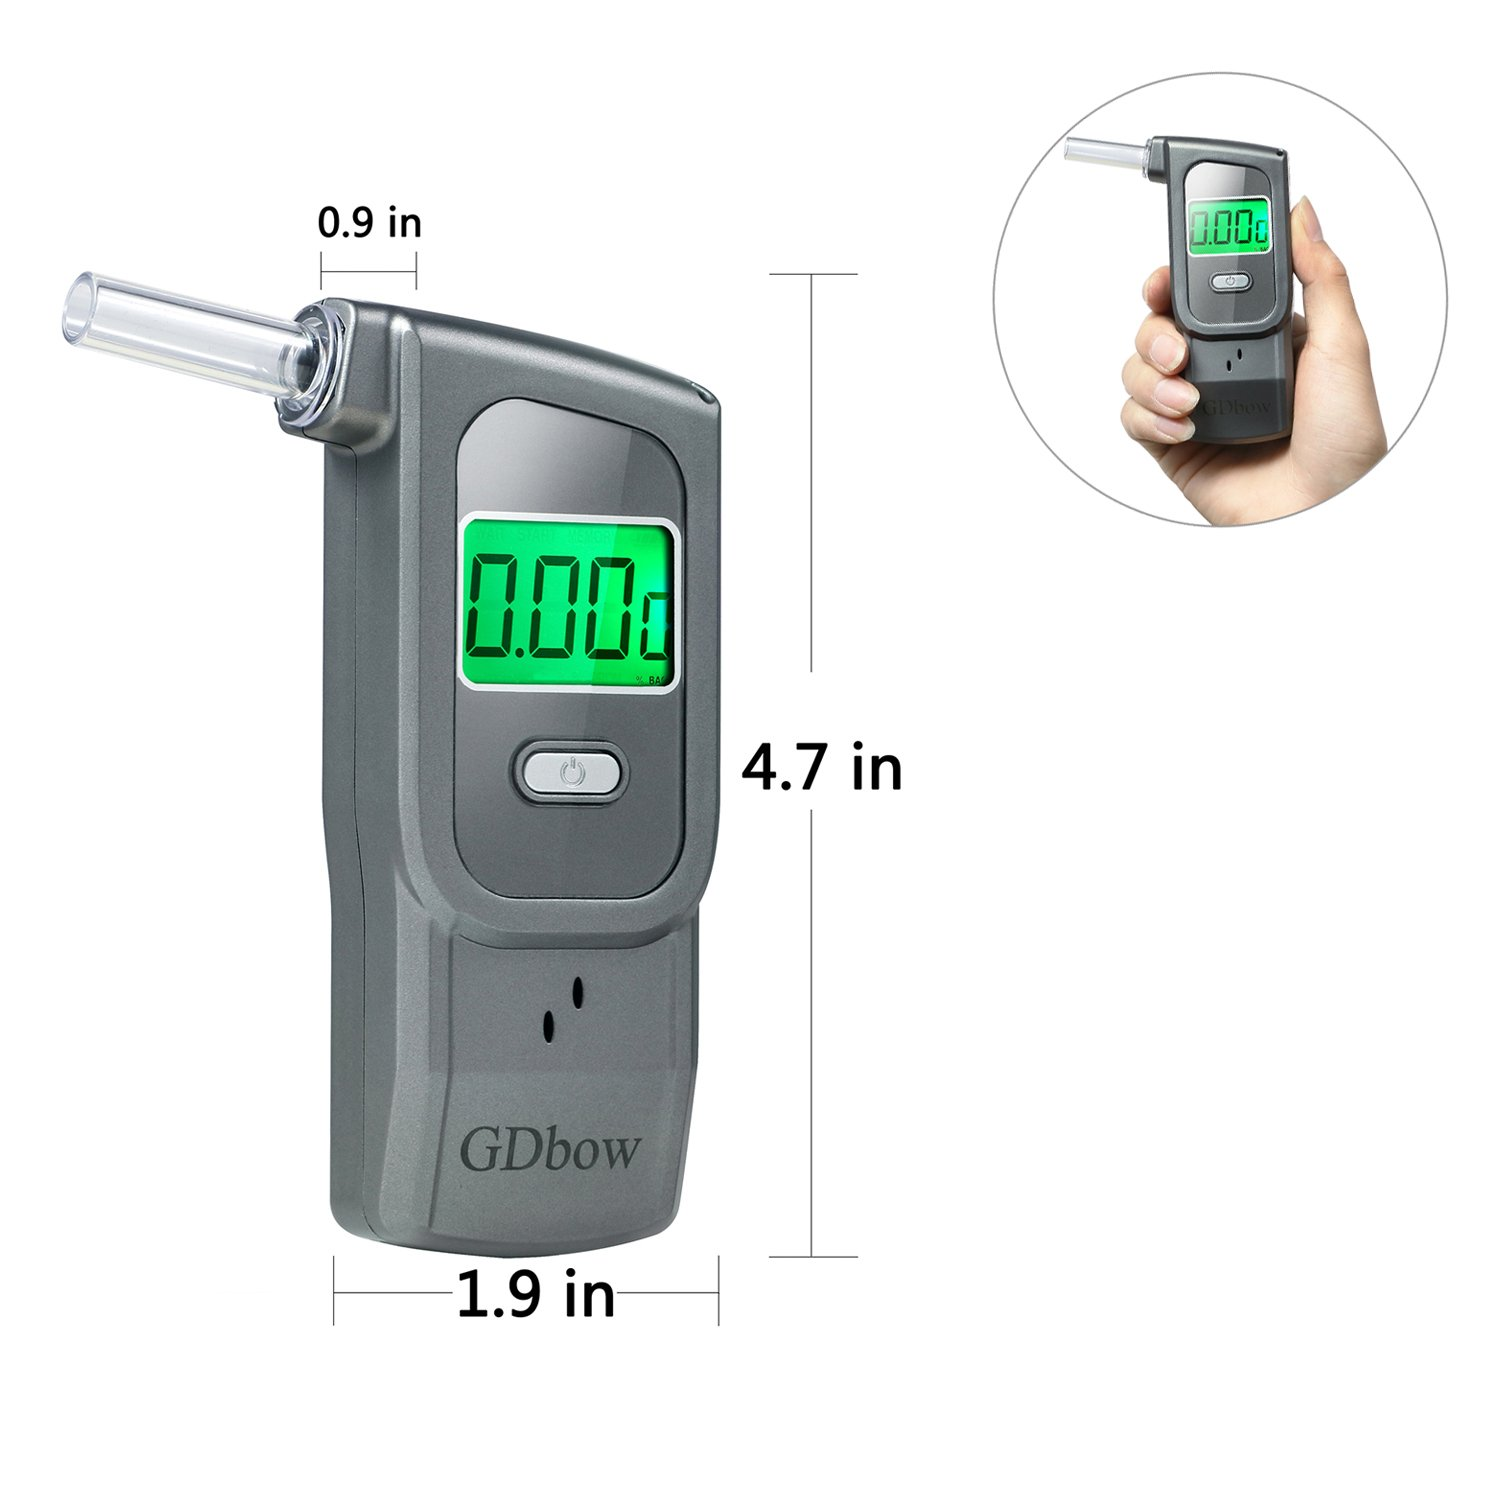 GDbow PortableBreathalyzer AlcoholTester Recording 32 Testing Results with 5 Mouthpieces for Personal Use -Grey by GDbow (Image #6)